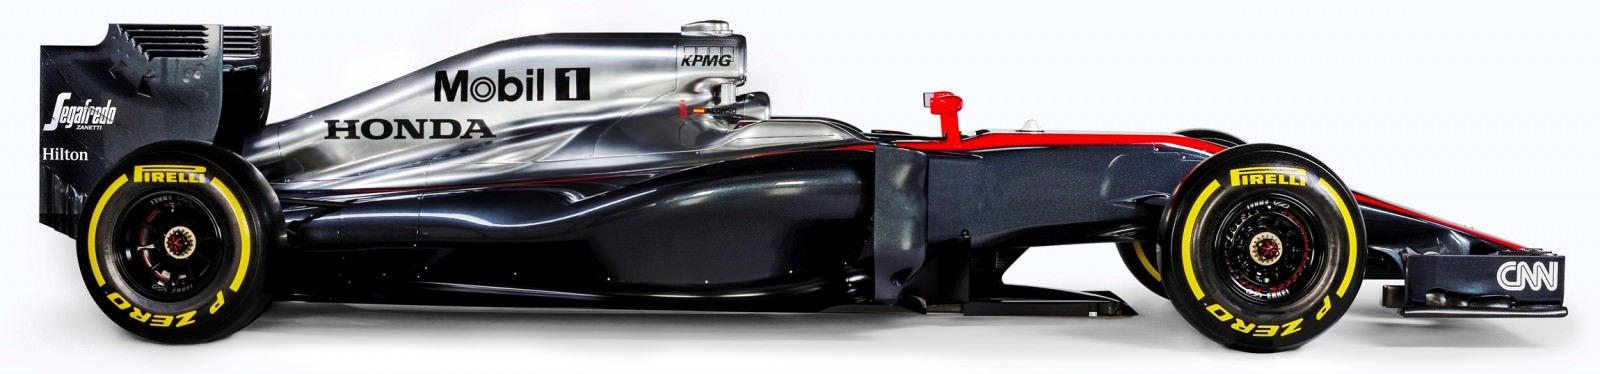 2015 F1 Cars Comparo - Infiniti RB11 vs McLaren-Honda MP4-30 vs AMG W06 vs Ferrari SF15T 28